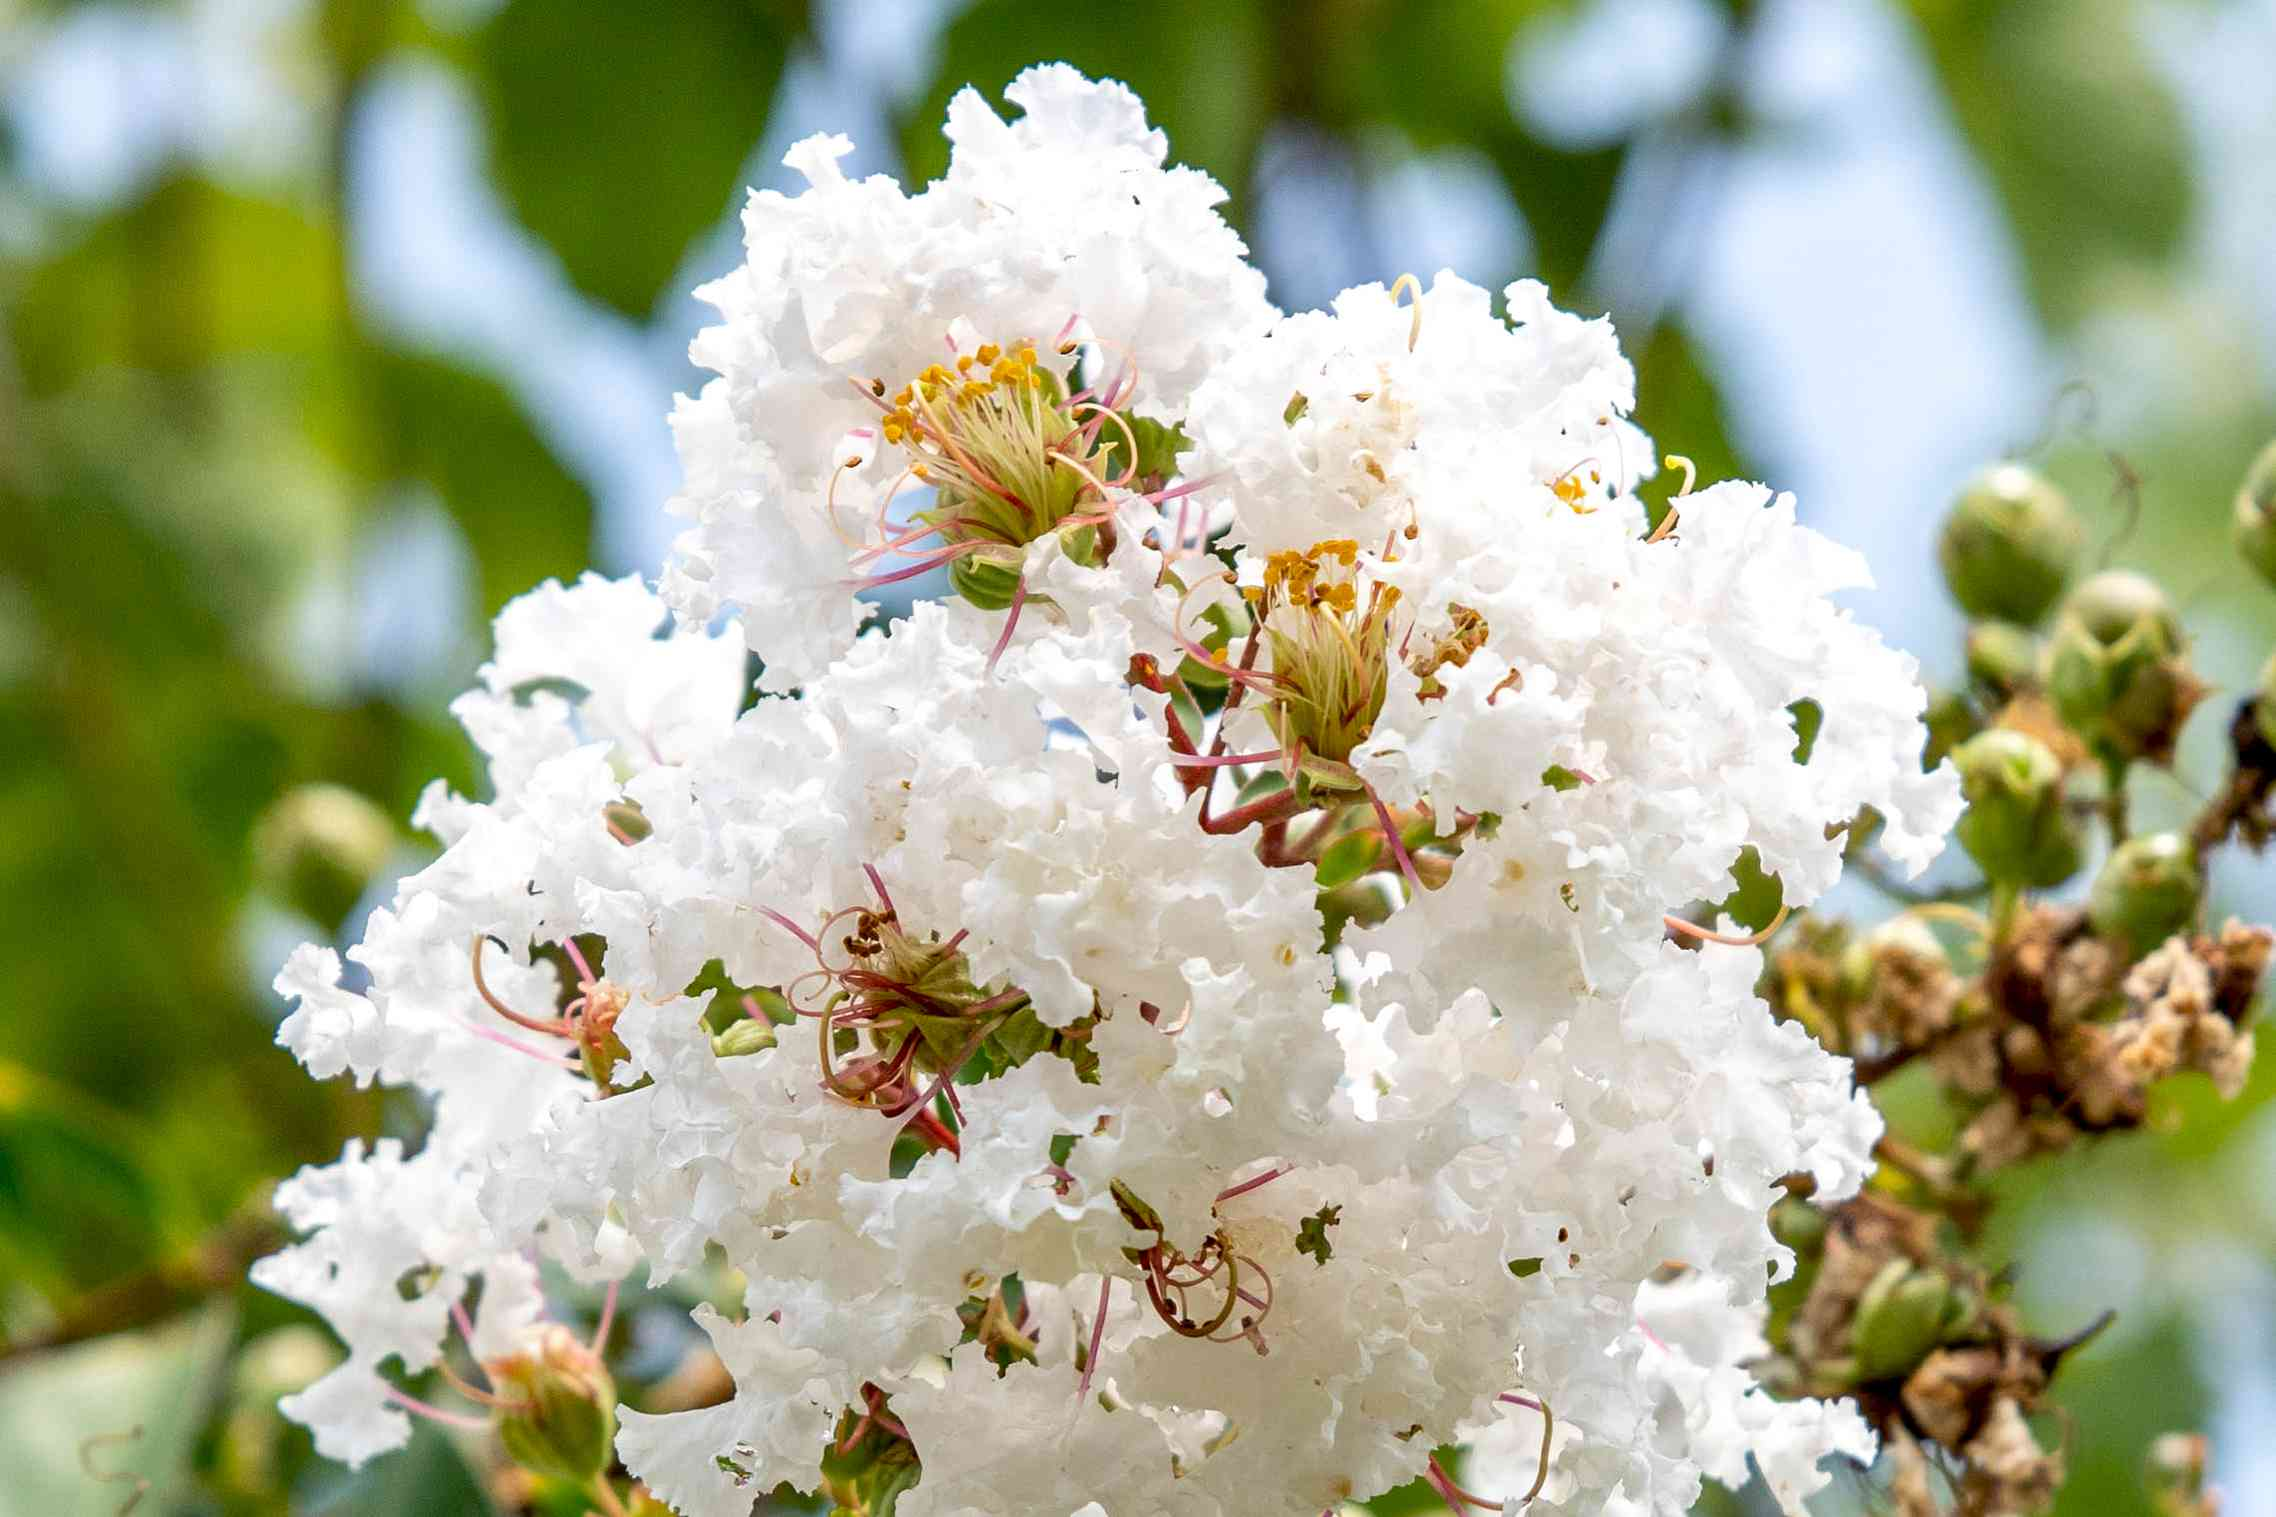 White fluffy blossoms clustered together with buds closeup